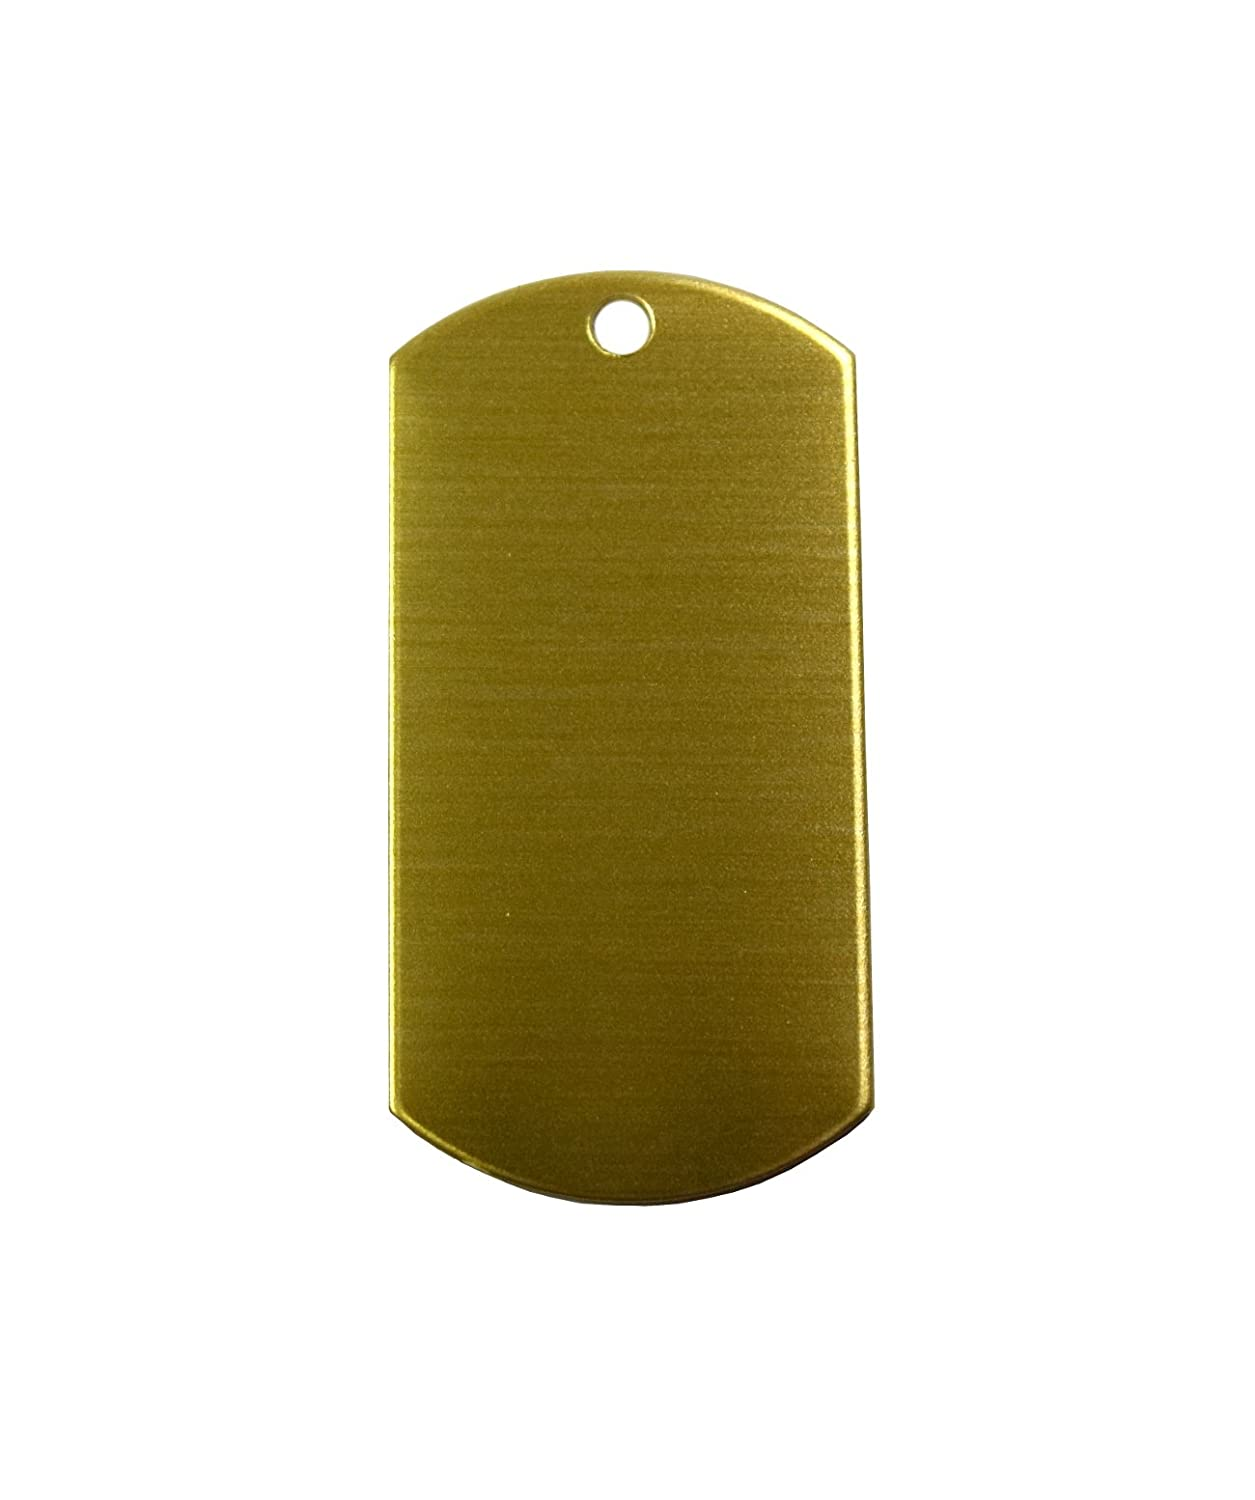 RMP Stamping Blanks, 1 Inch x 2 Inch Dog Tag with One Hole, Brass 0.032 Inch (20 Ga.) - 20 Pack